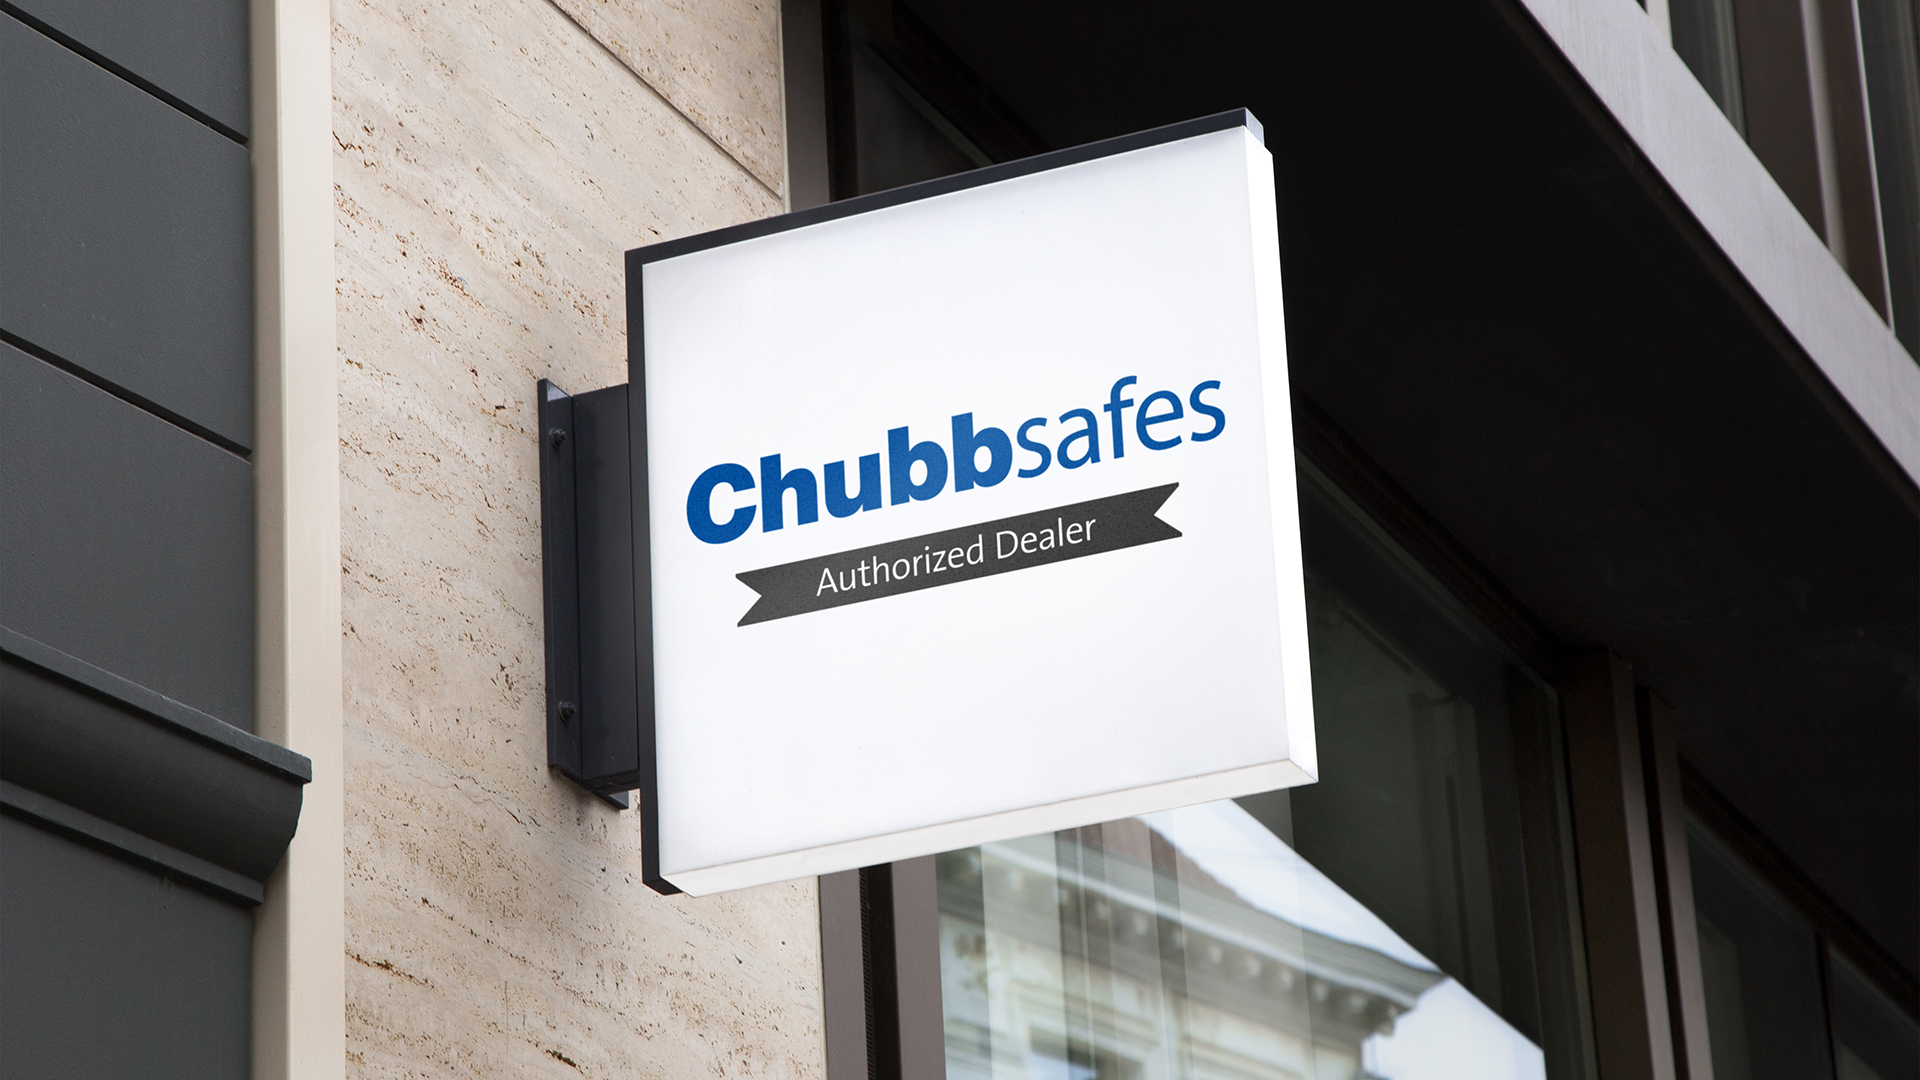 Chubbsafes Dealer Sign